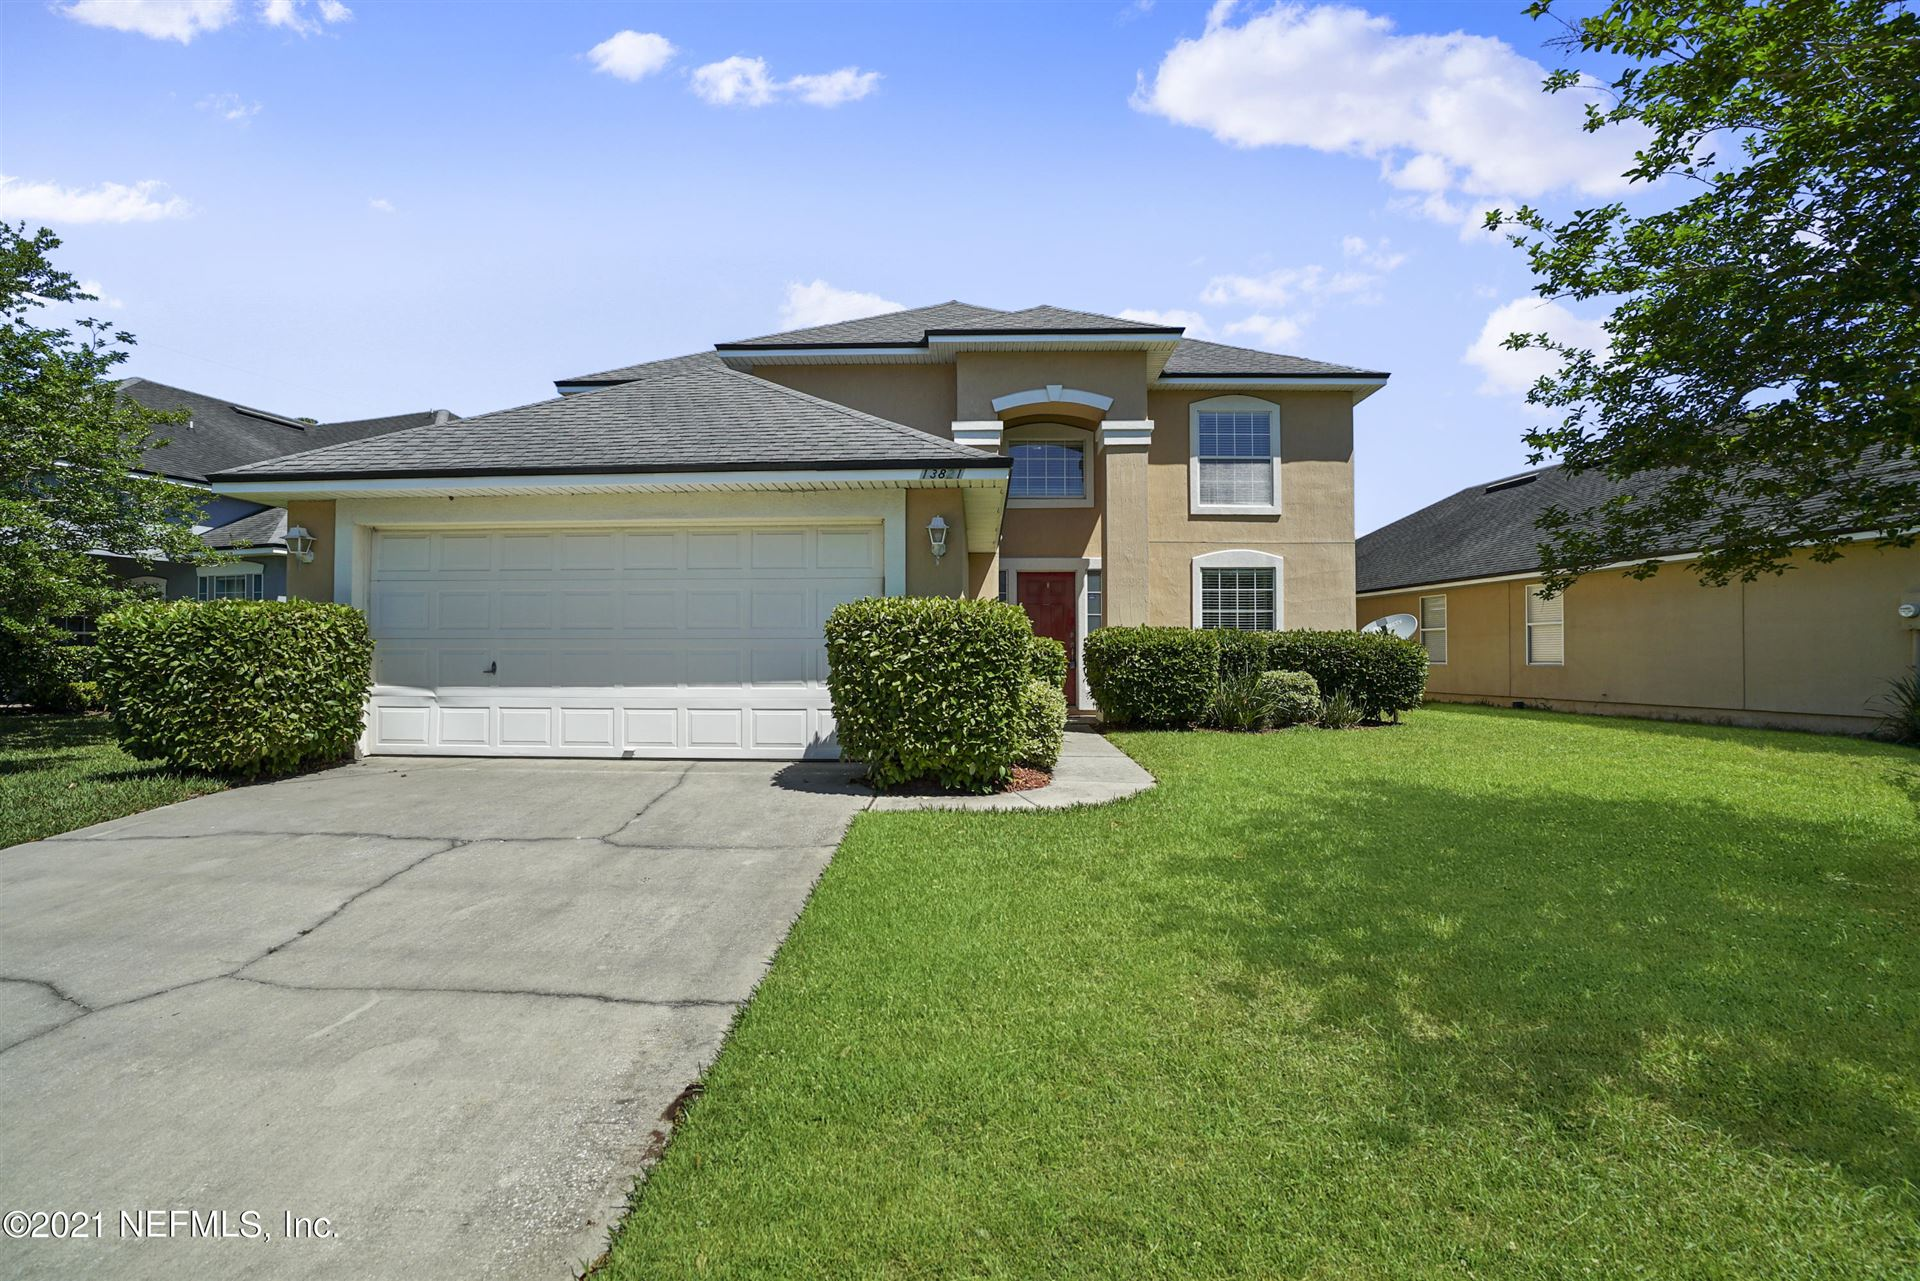 13821 ZION GATE CT, Jacksonville, FL 32224 - MLS#: 1107800